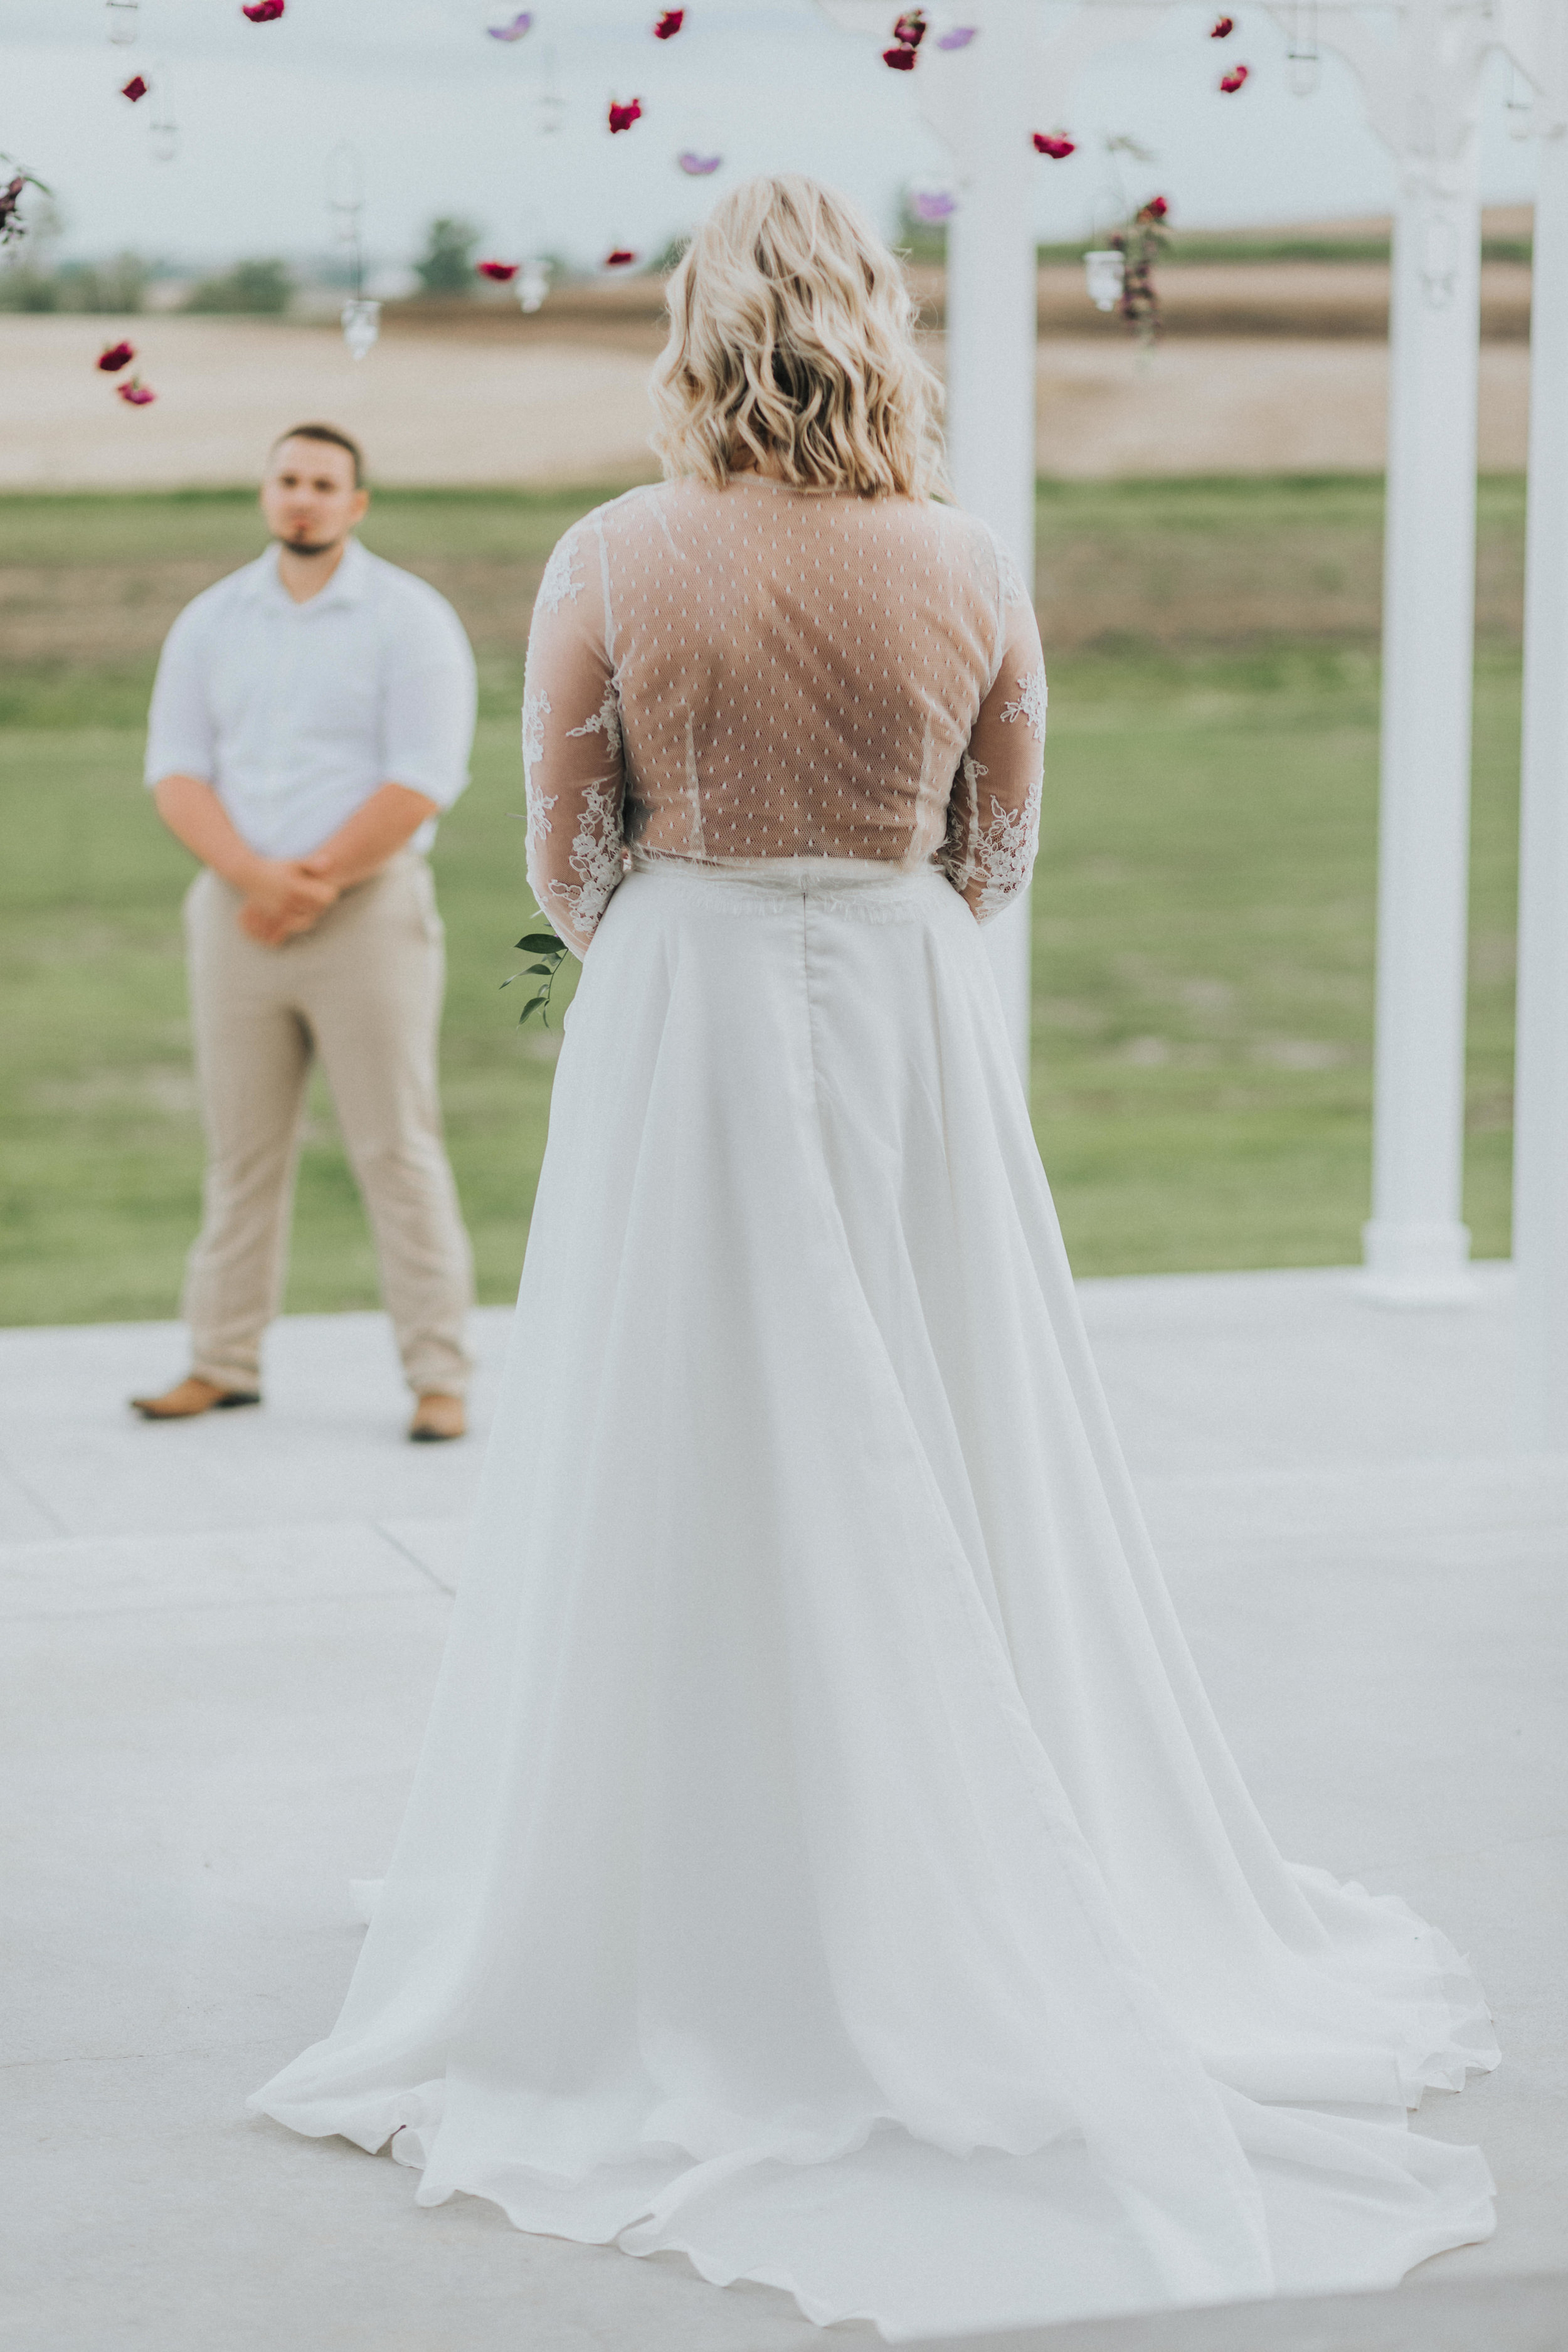 276 tiny-luxe-weddings-iowa-venue-photogeraphy-palace.jpg